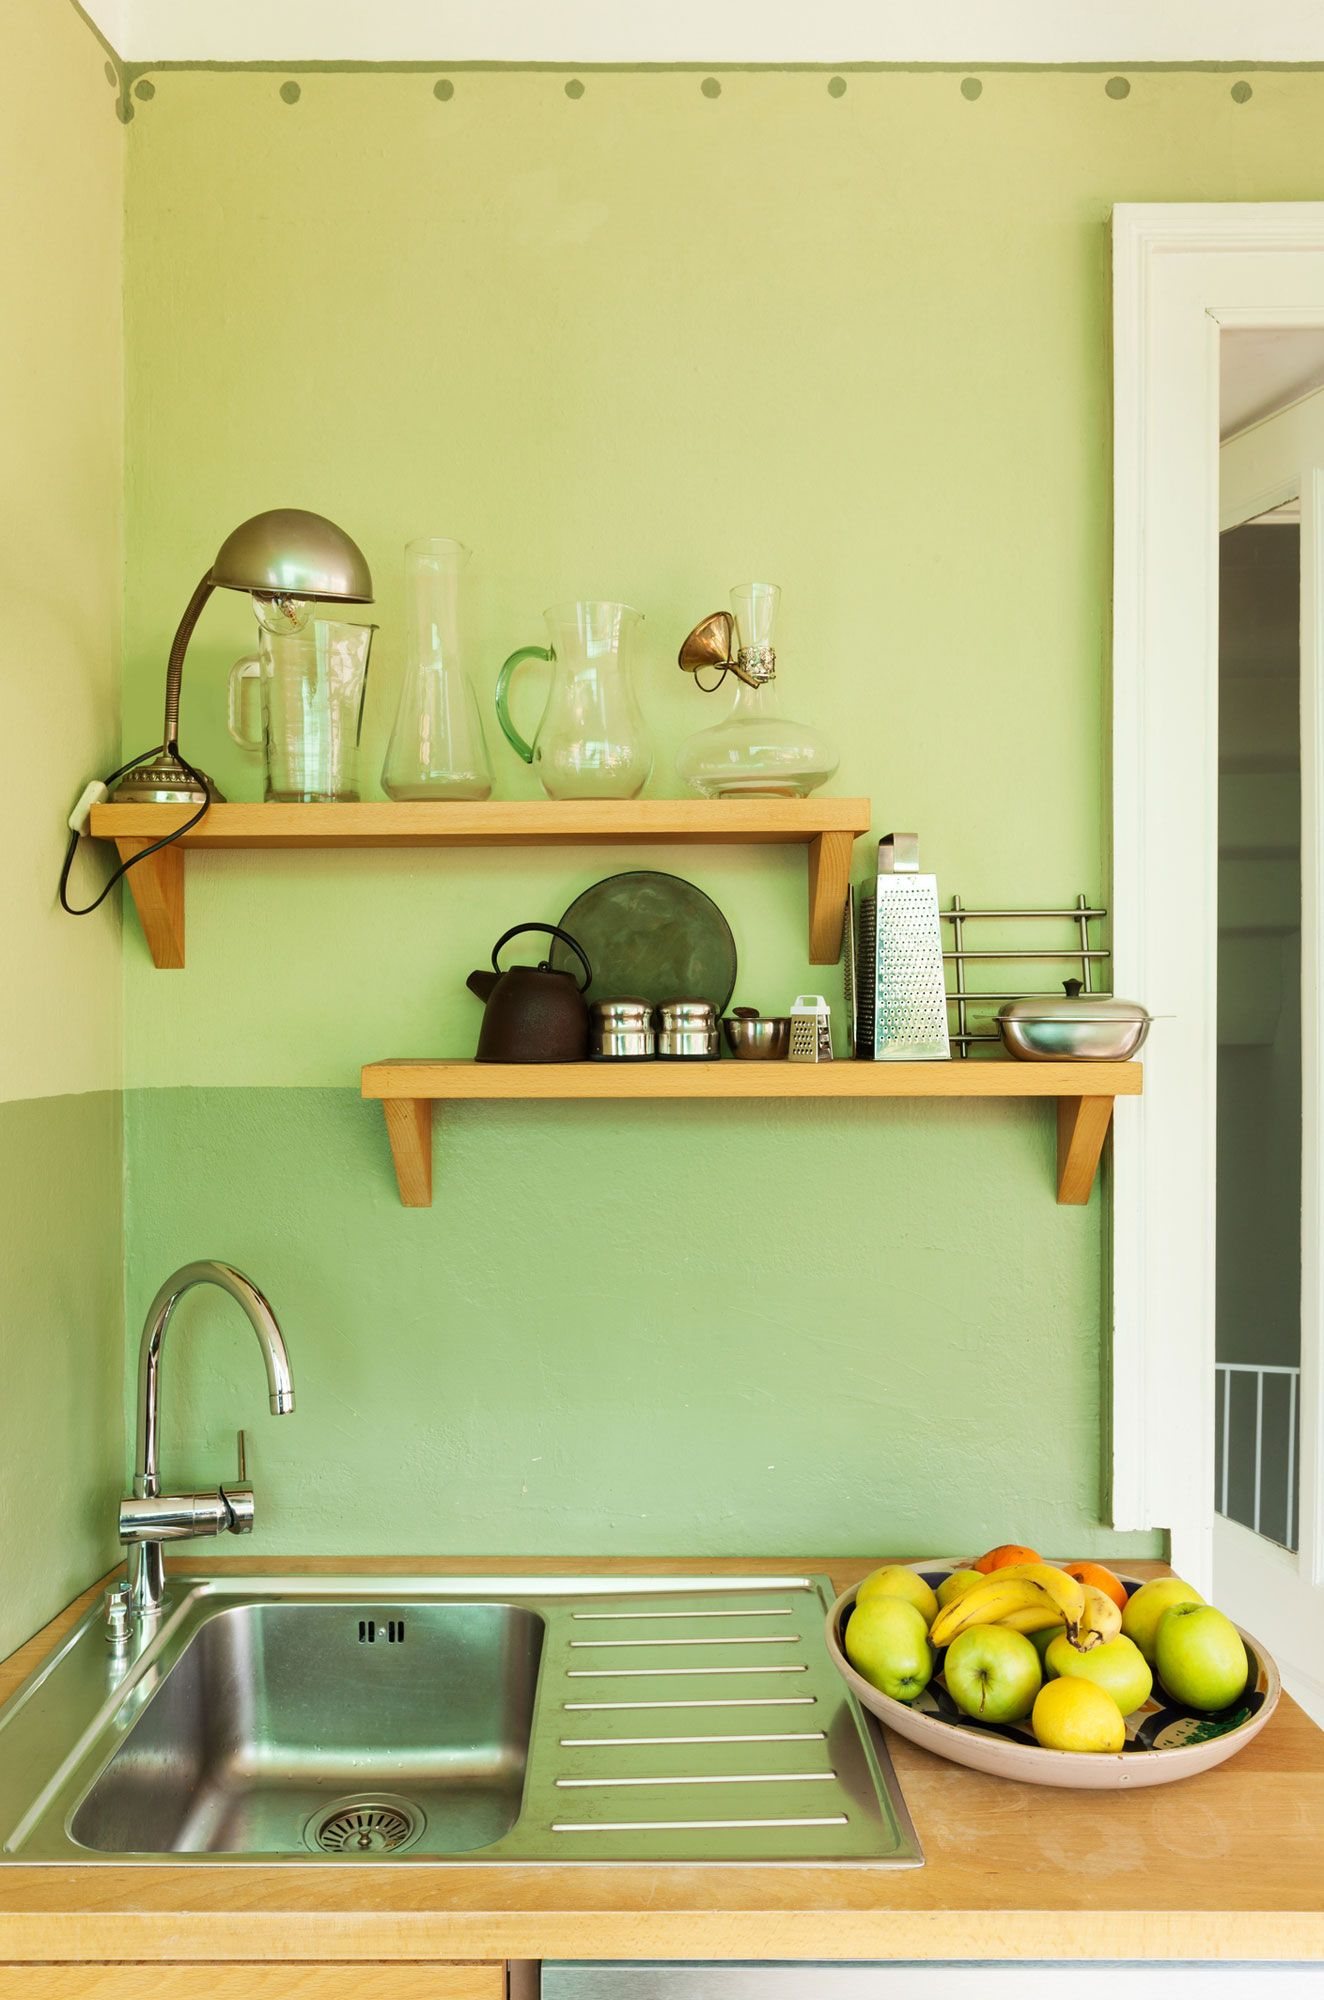 Decorar una cocina en color verde hogarmania for Ideas decorar pared cocina